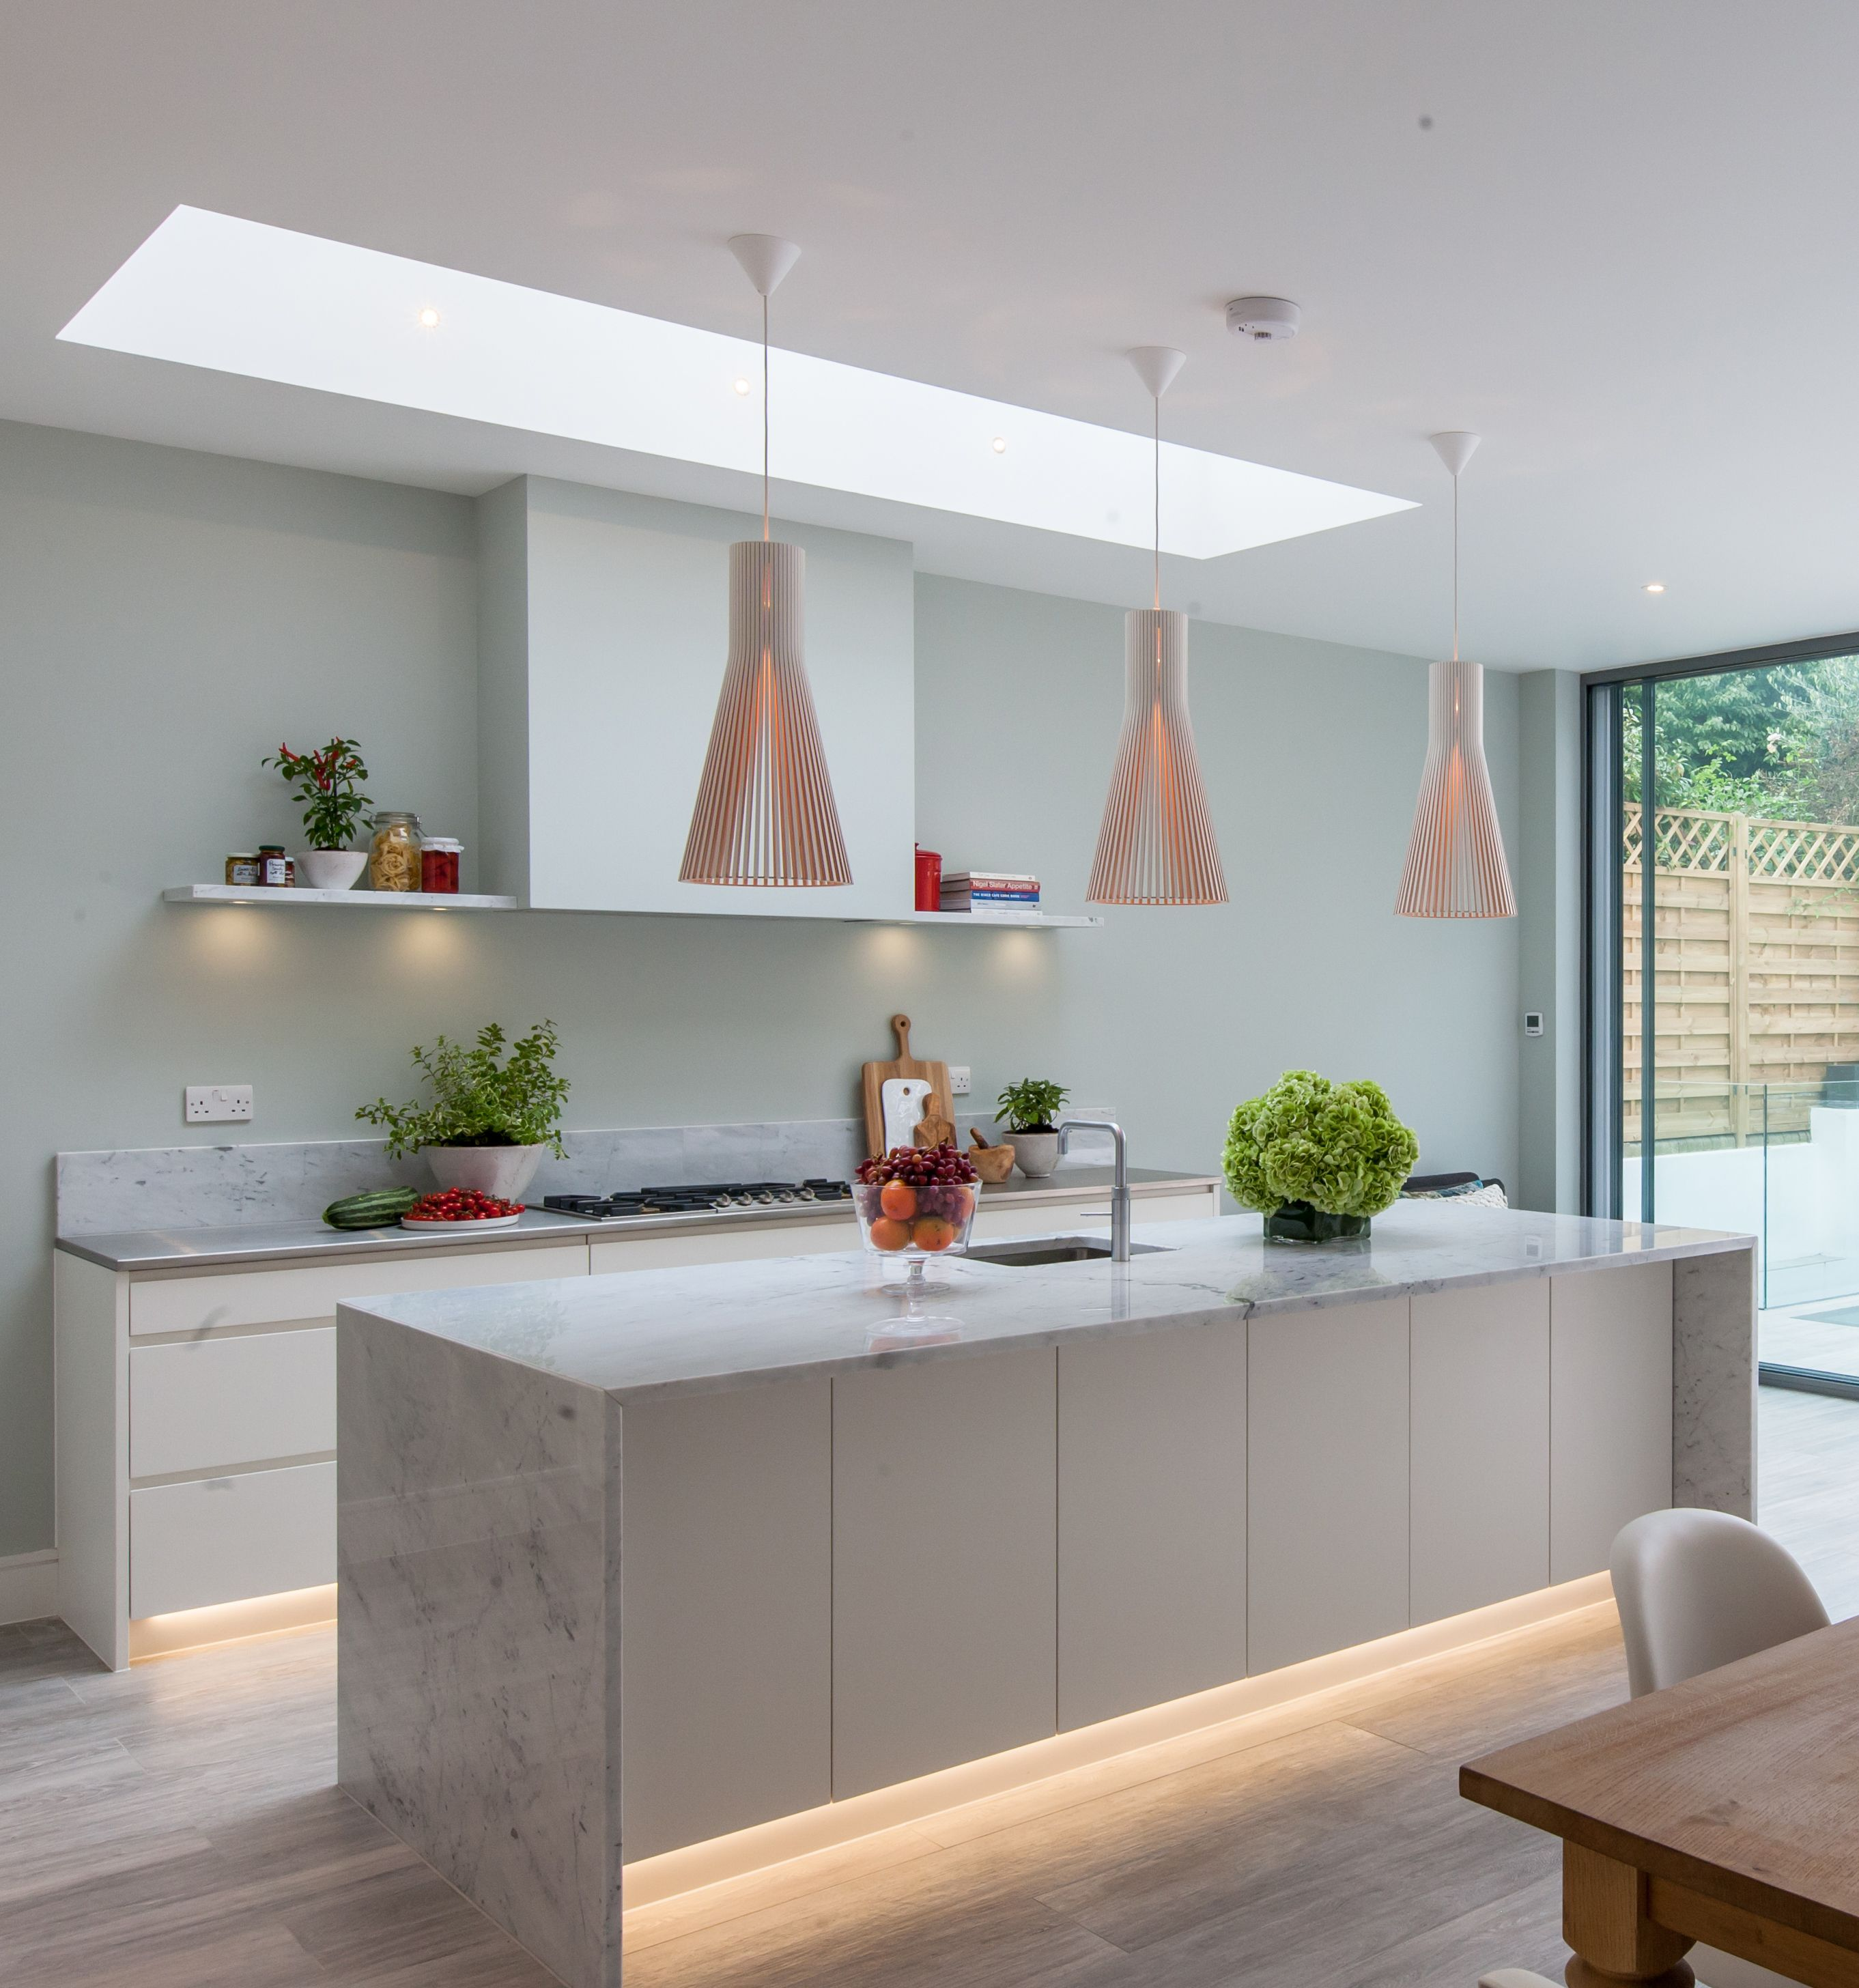 We love this sleek British kitchen with our Secto 4200 pendants